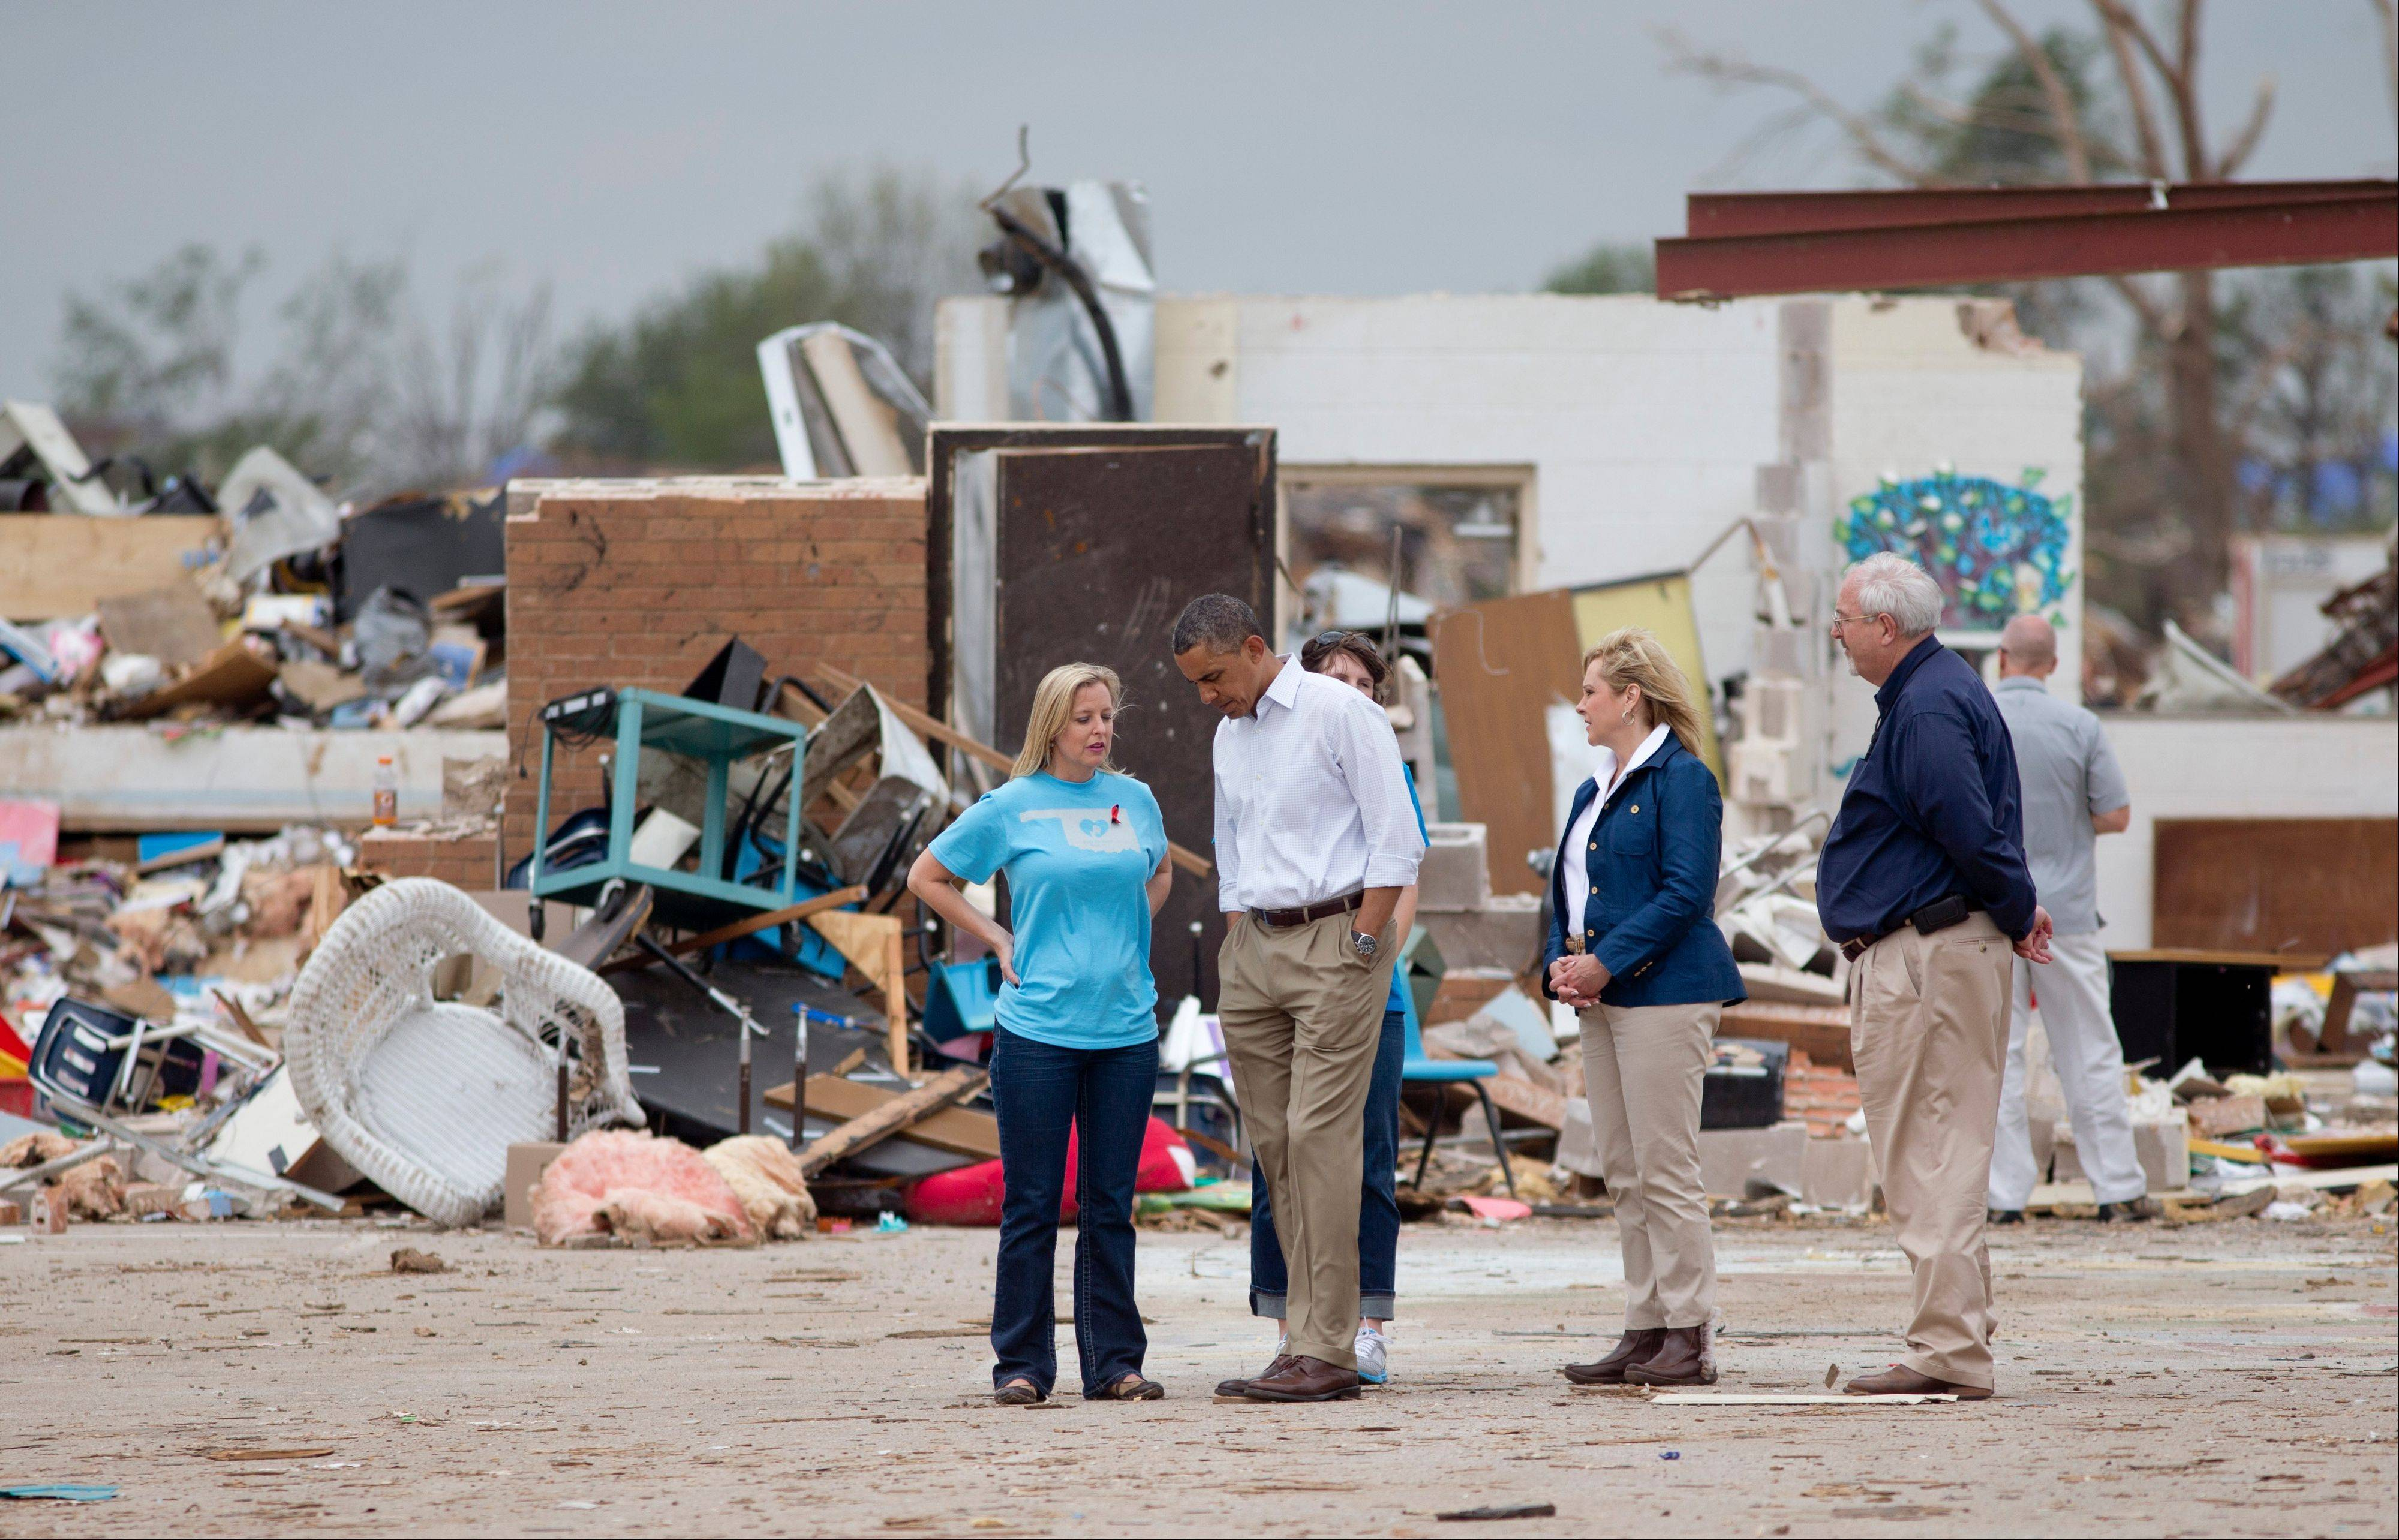 President Barack Obama listens to Plaza Towers Elementary School principal Amy Simpson, left, with Oklahoma Gov. Mary Fallin, second from right, and FEMA administrator W. Craig Fugate, right as he views the devastation of the Plaza Towers Elementary School, Sunday, May 26, 2013, in Moore, Okla., after the massive tornado and severe weather the we before.